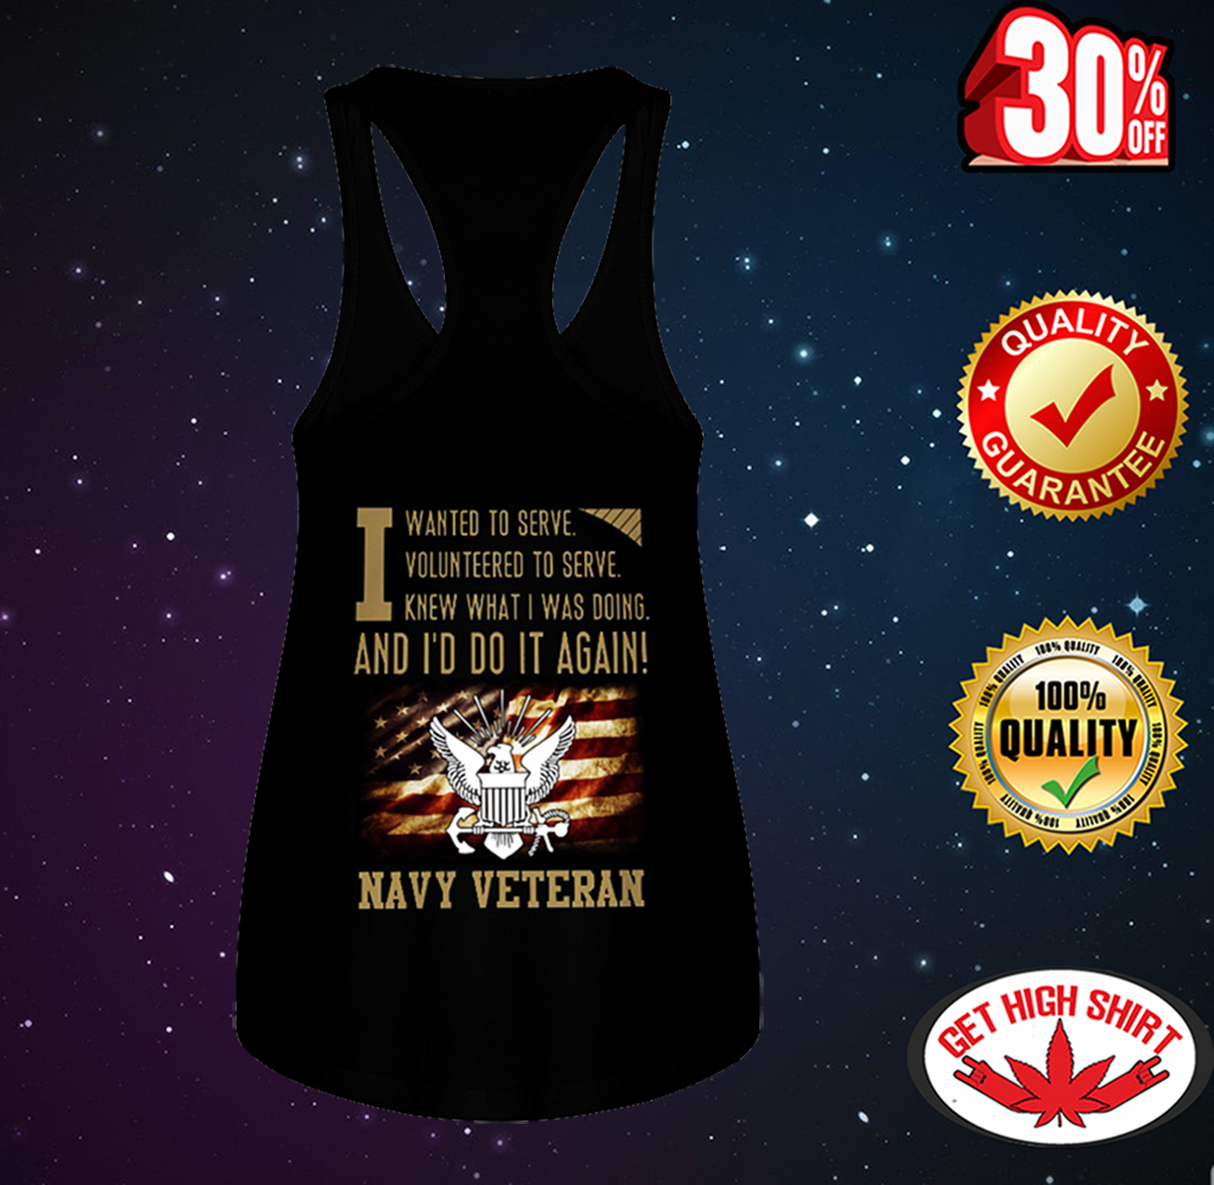 I wanted to serve volunteered to serve knew what i was doing and I'd do it again navy veteran flowy tank